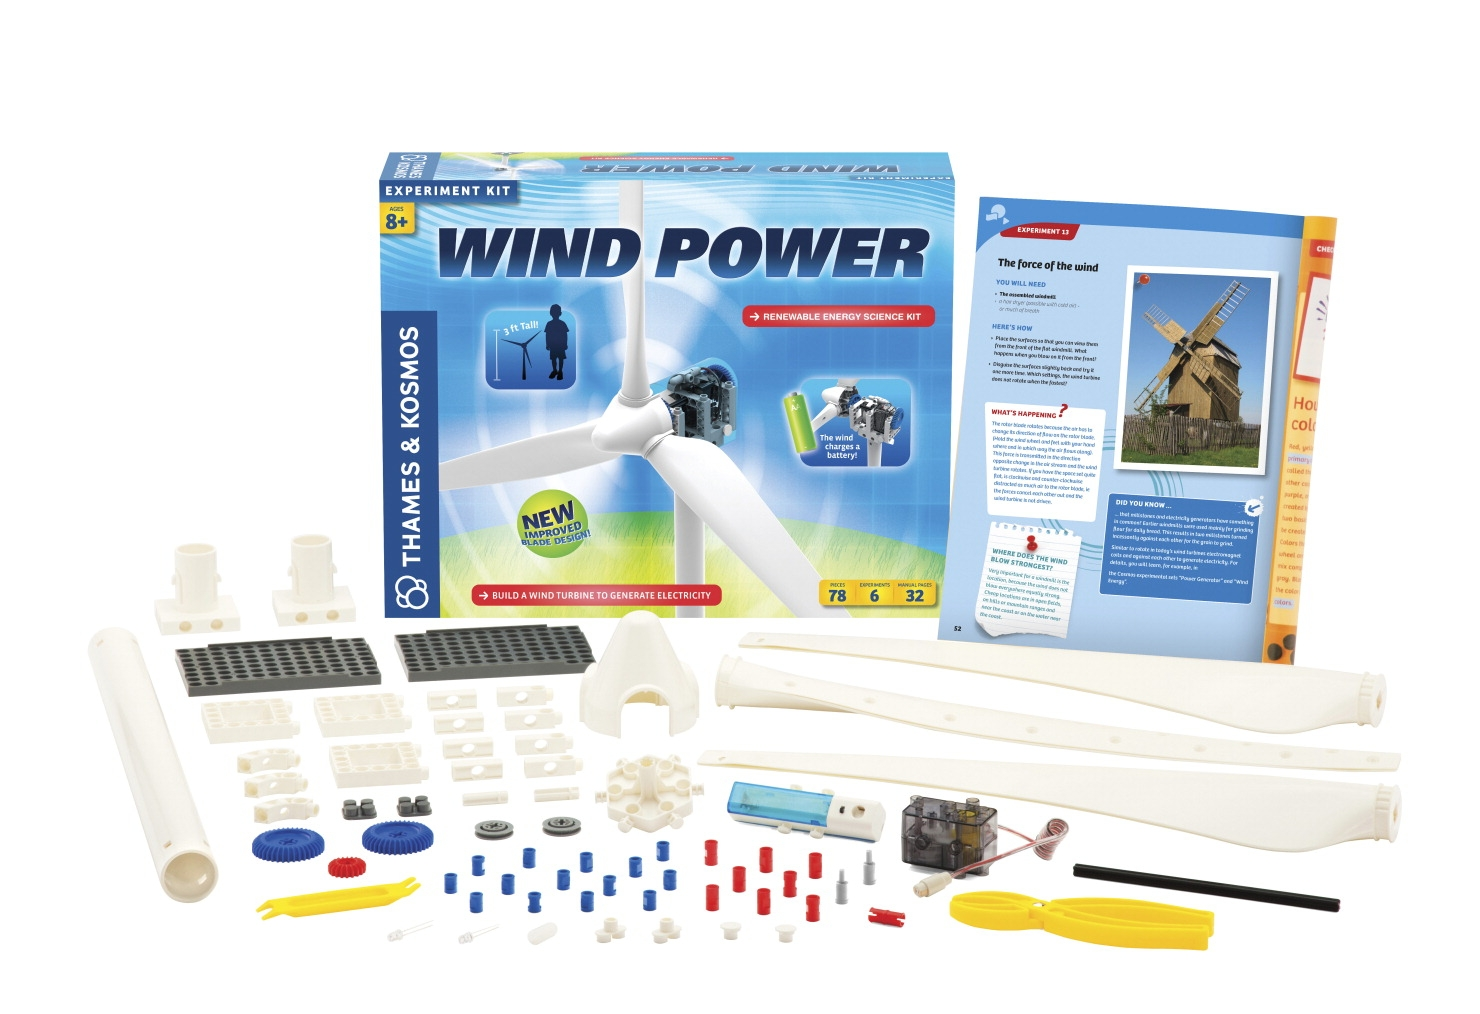 Facilities Management Medical Green Line And Auxiliary Exam Pediatric Tables - 1539109 - Thames And Kosmos Wind Power Kit 1539109